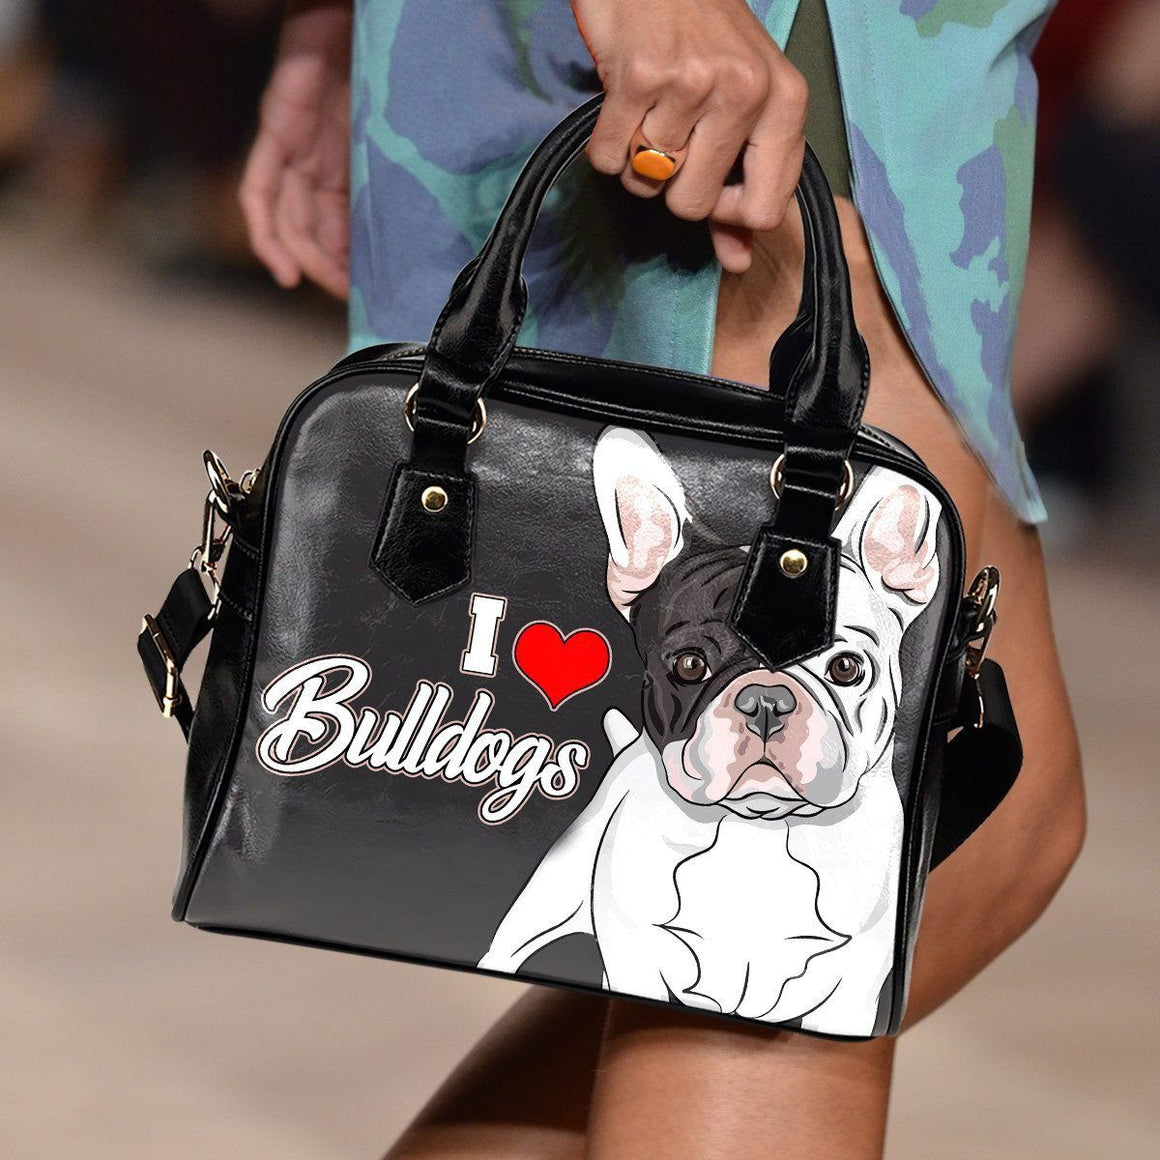 I Love Bulldogs Shoulder Bag